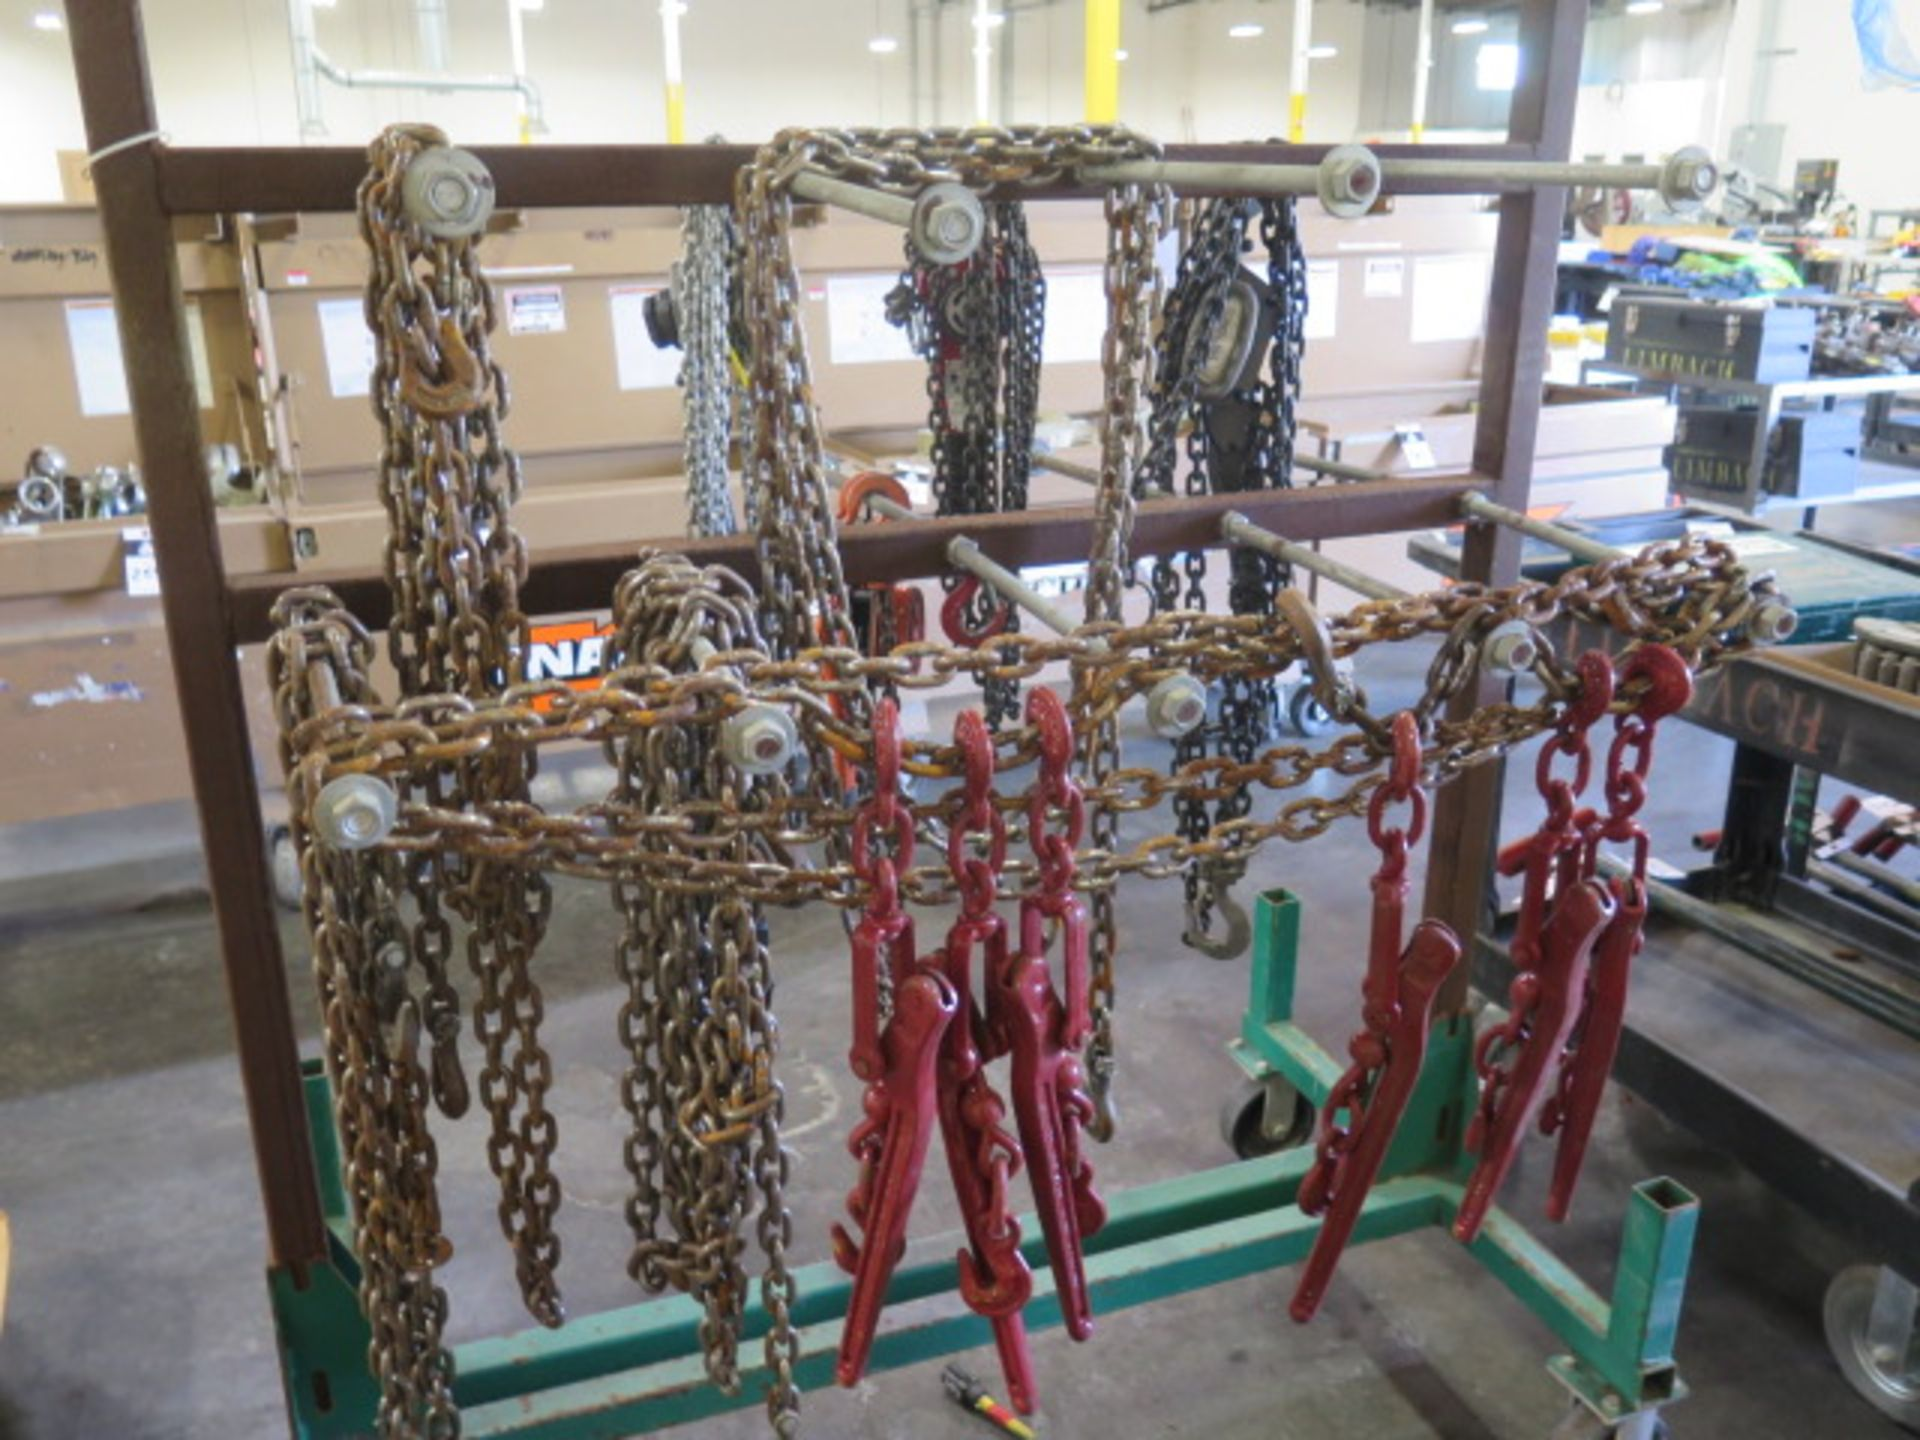 Chain Come-Alongs (4), Chain Tensioners (6) Chain and Cart (SOLD AS-IS - NO WARRANTY) - Image 5 of 11